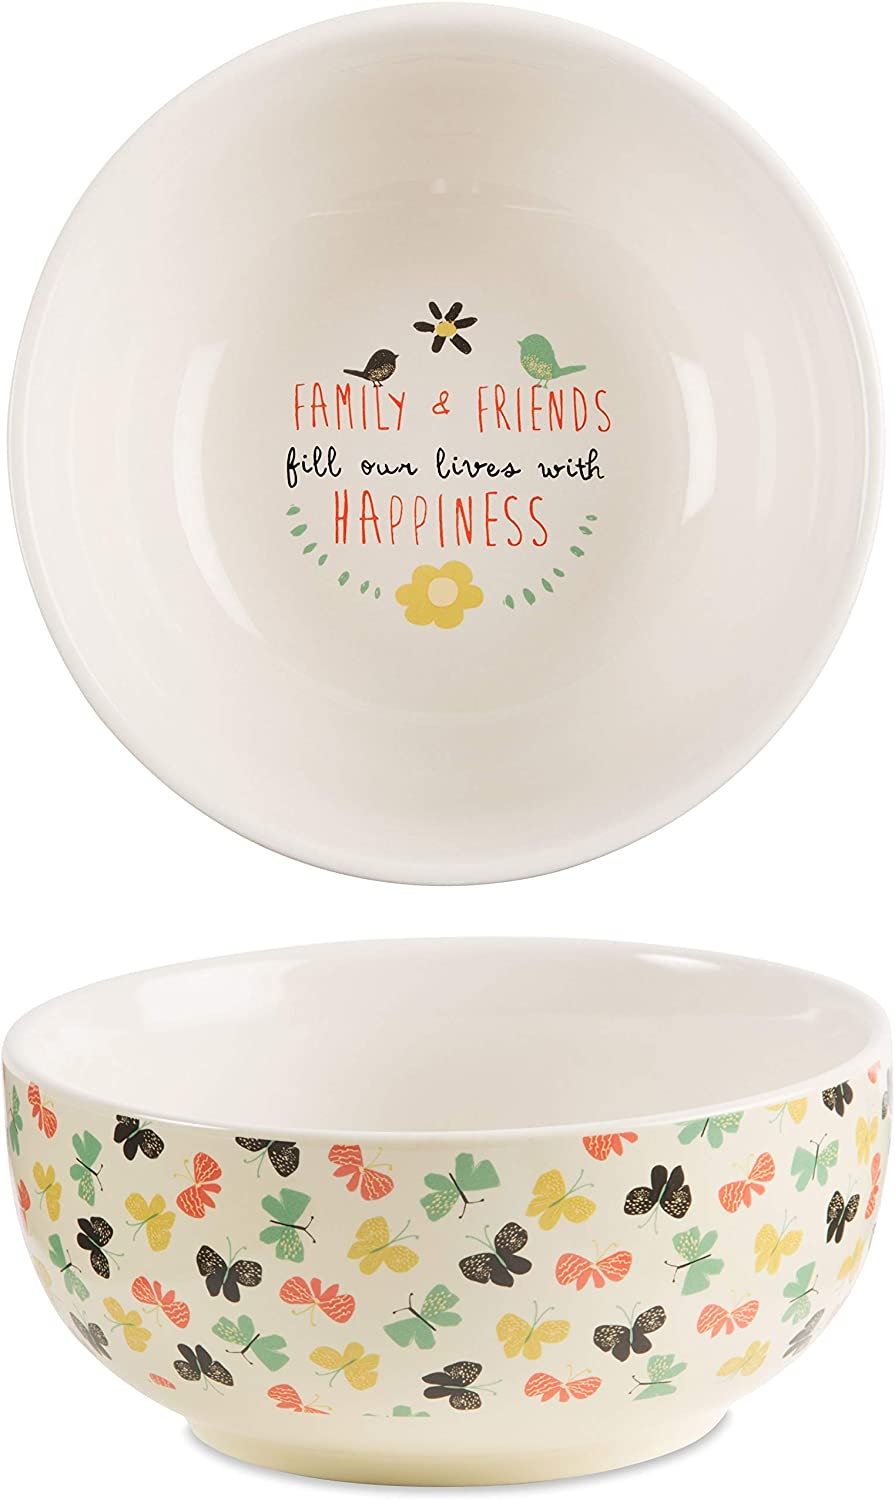 Pavilion Gift Company Family & Friends Fill our Lives with Happiness Decorative Ceramic Bowl, Multicolor